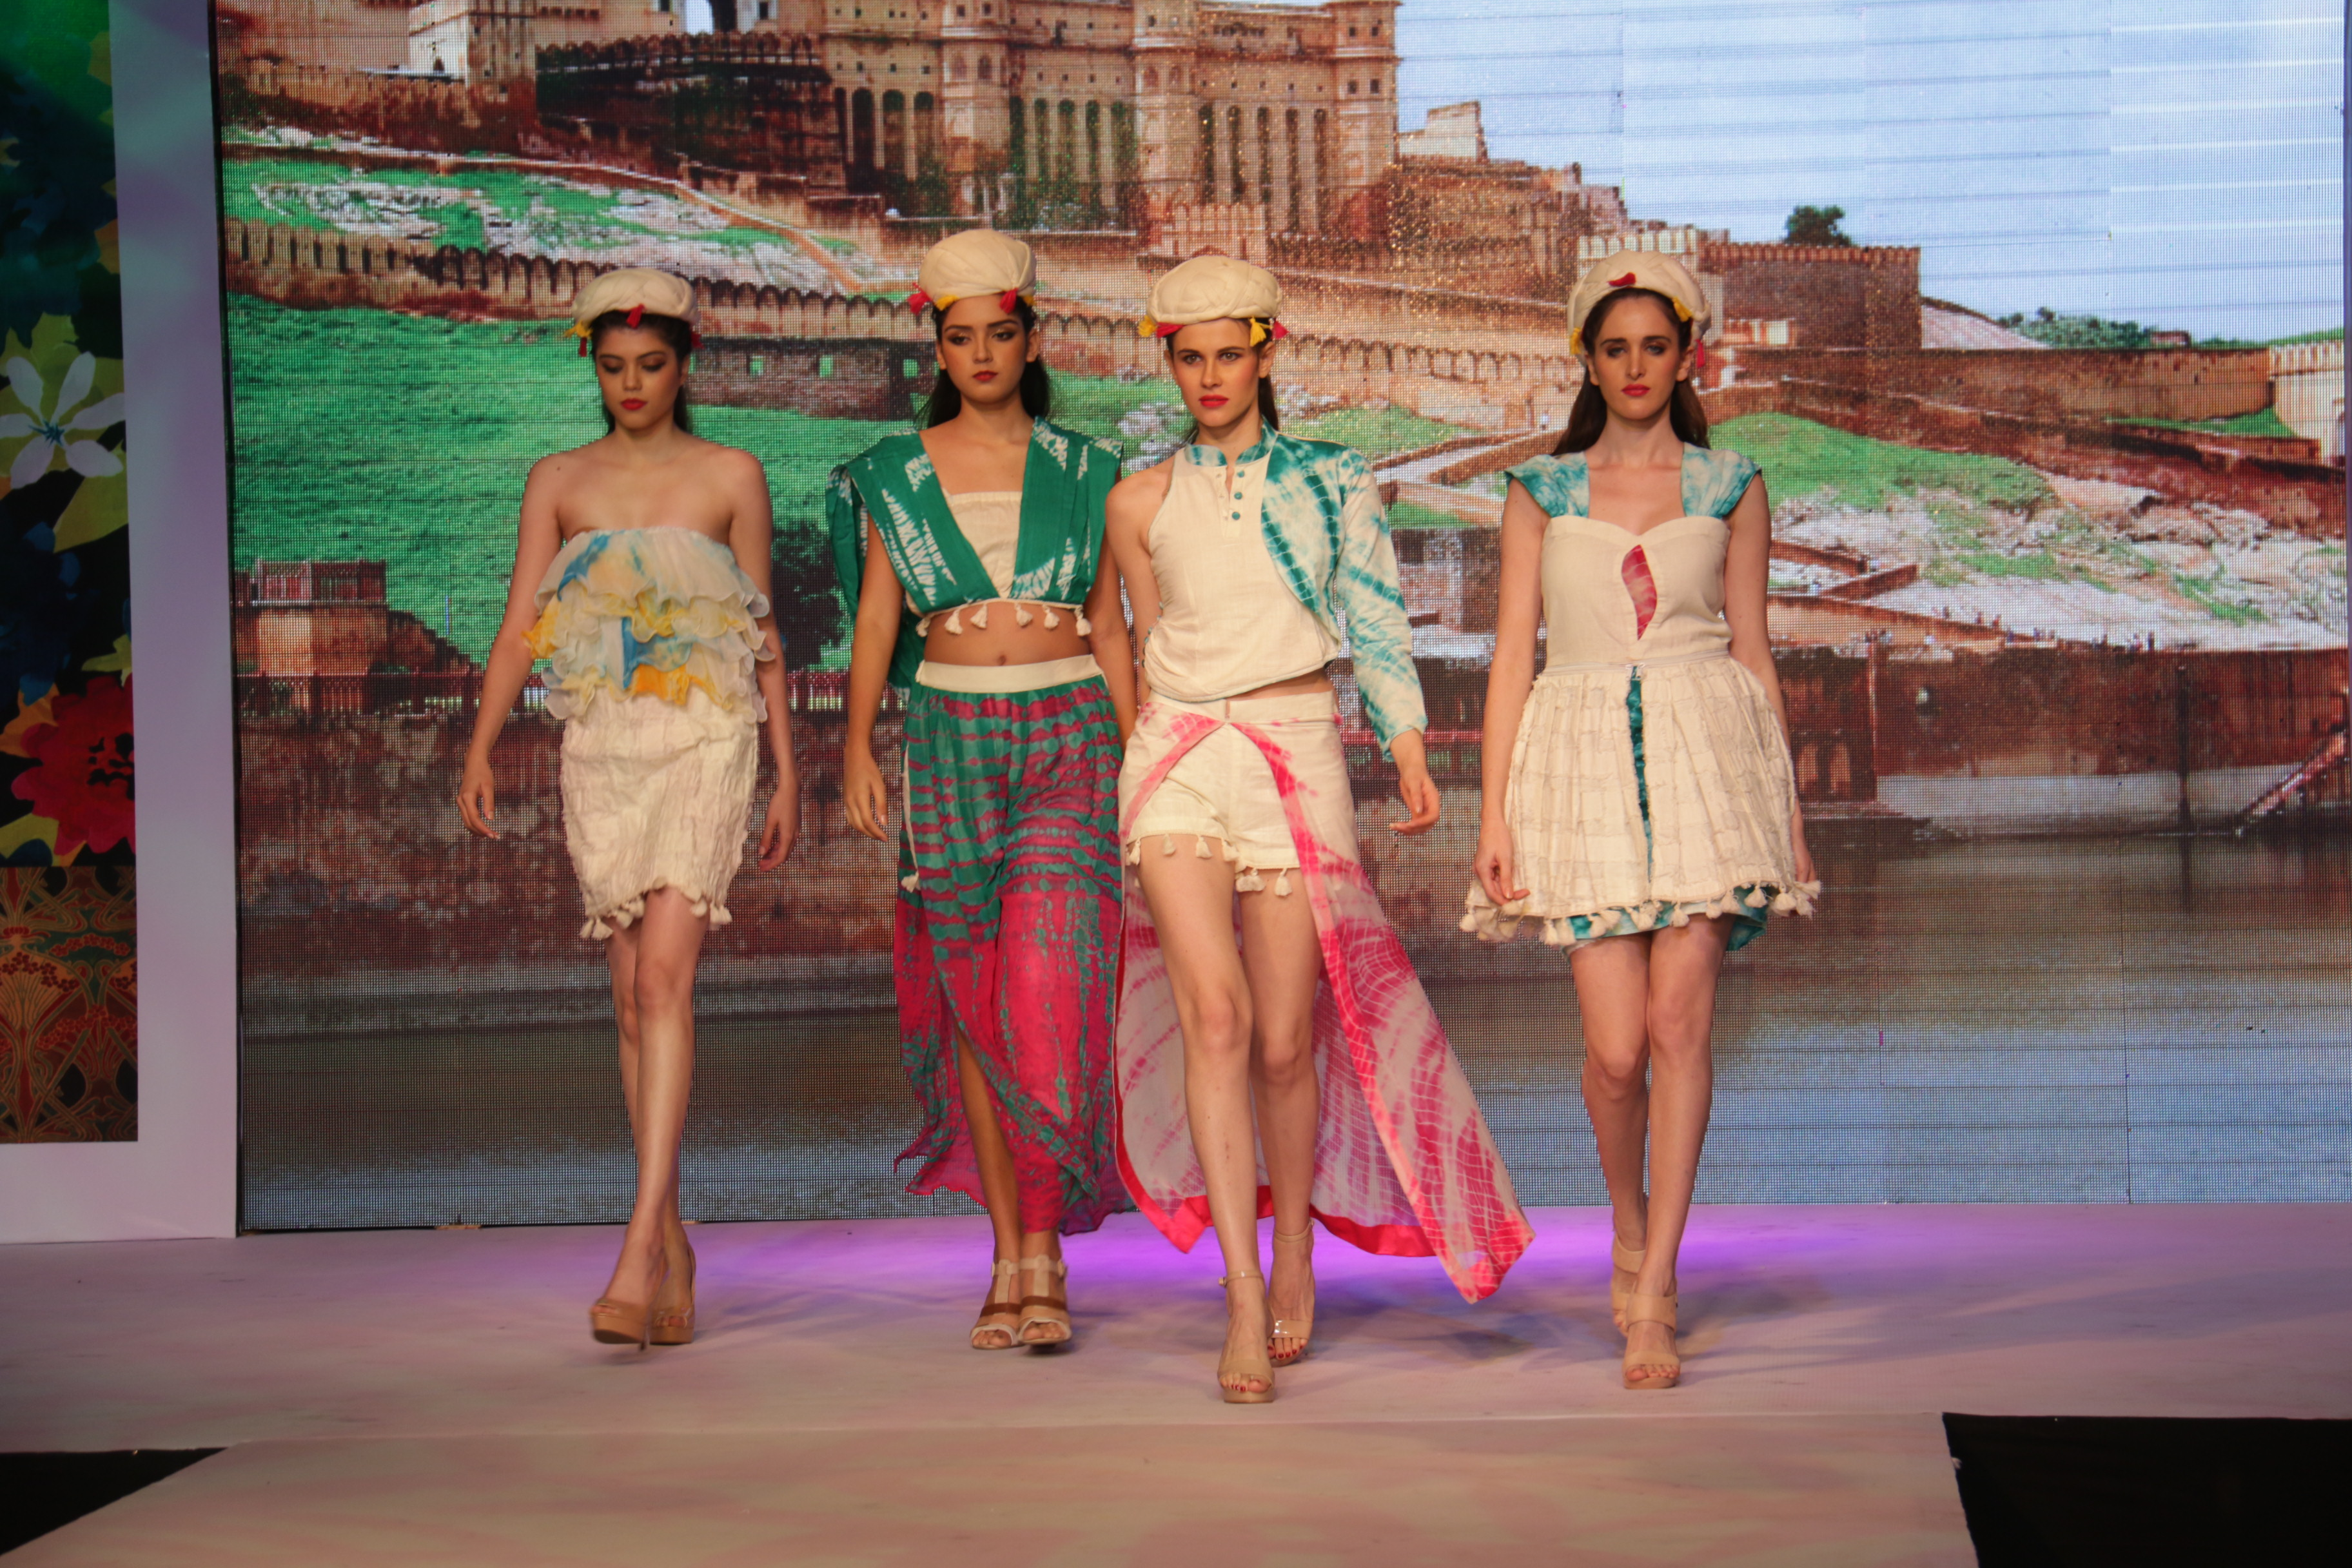 Heights Institute Of Fashion And Technology Jaipur Courses Fees Placements Ranking Admission 2020